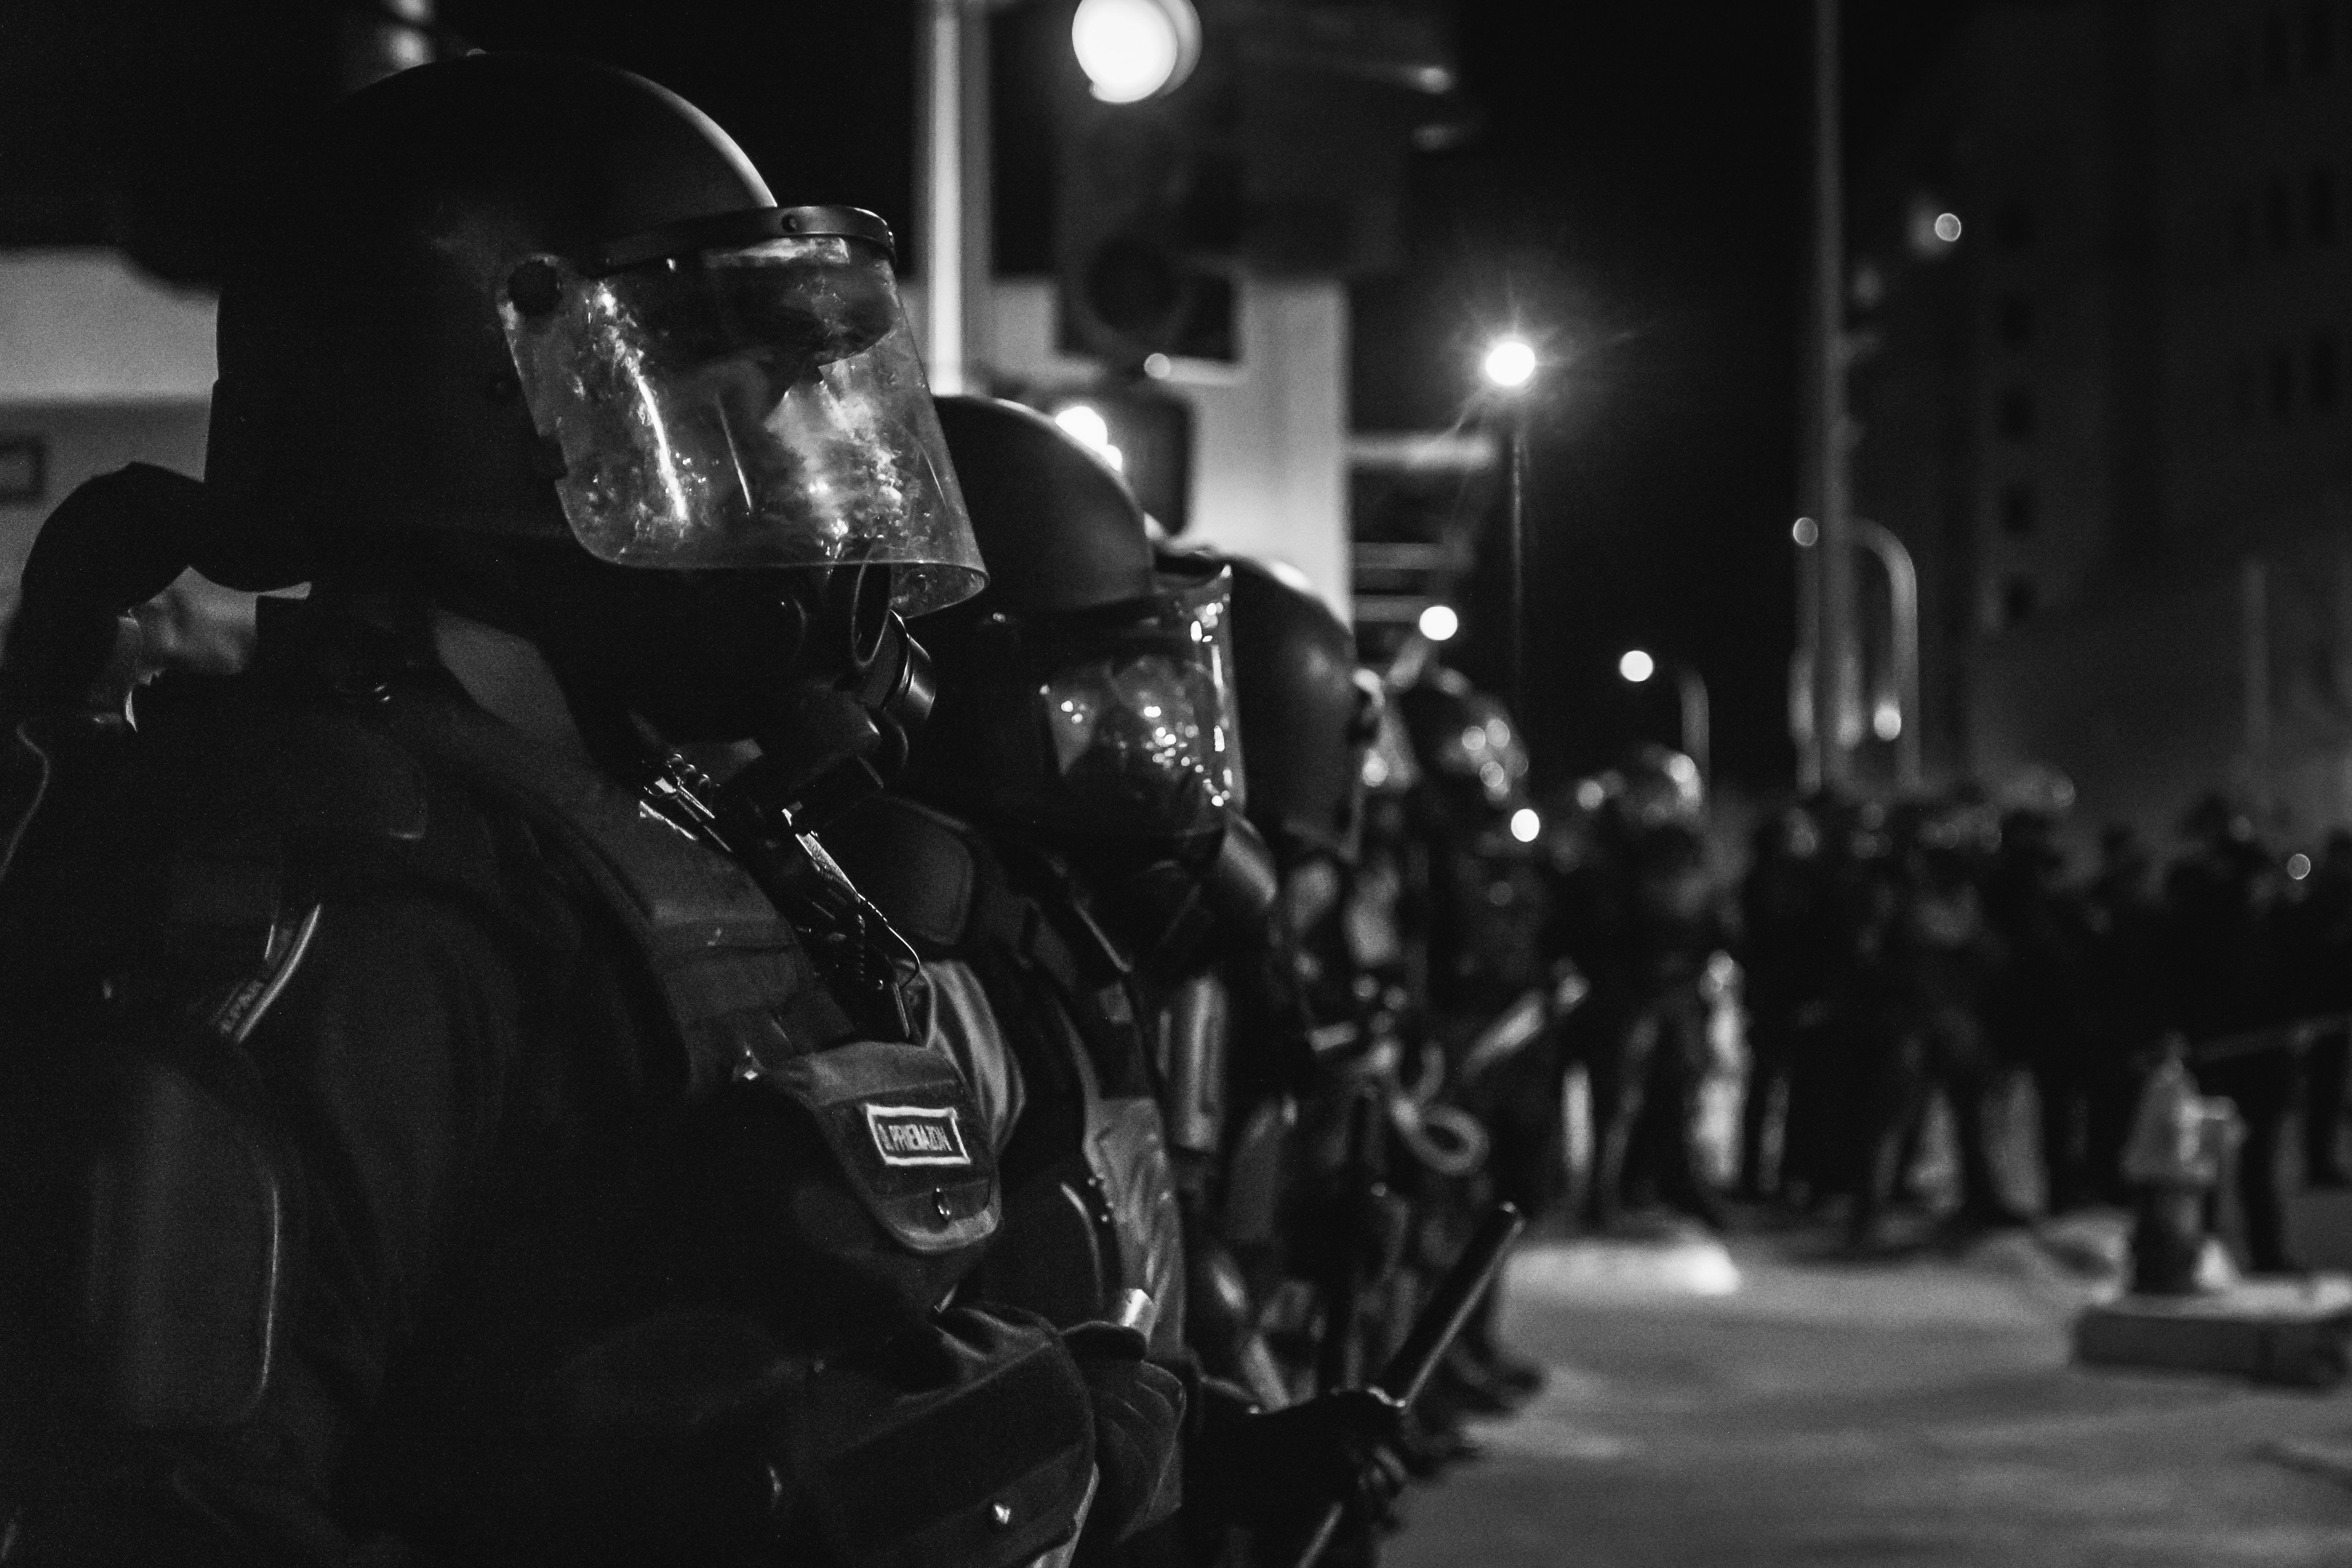 Albuquerque police officers observe a protest in March 2014, just weeks before the U.S. Department of Justice released a